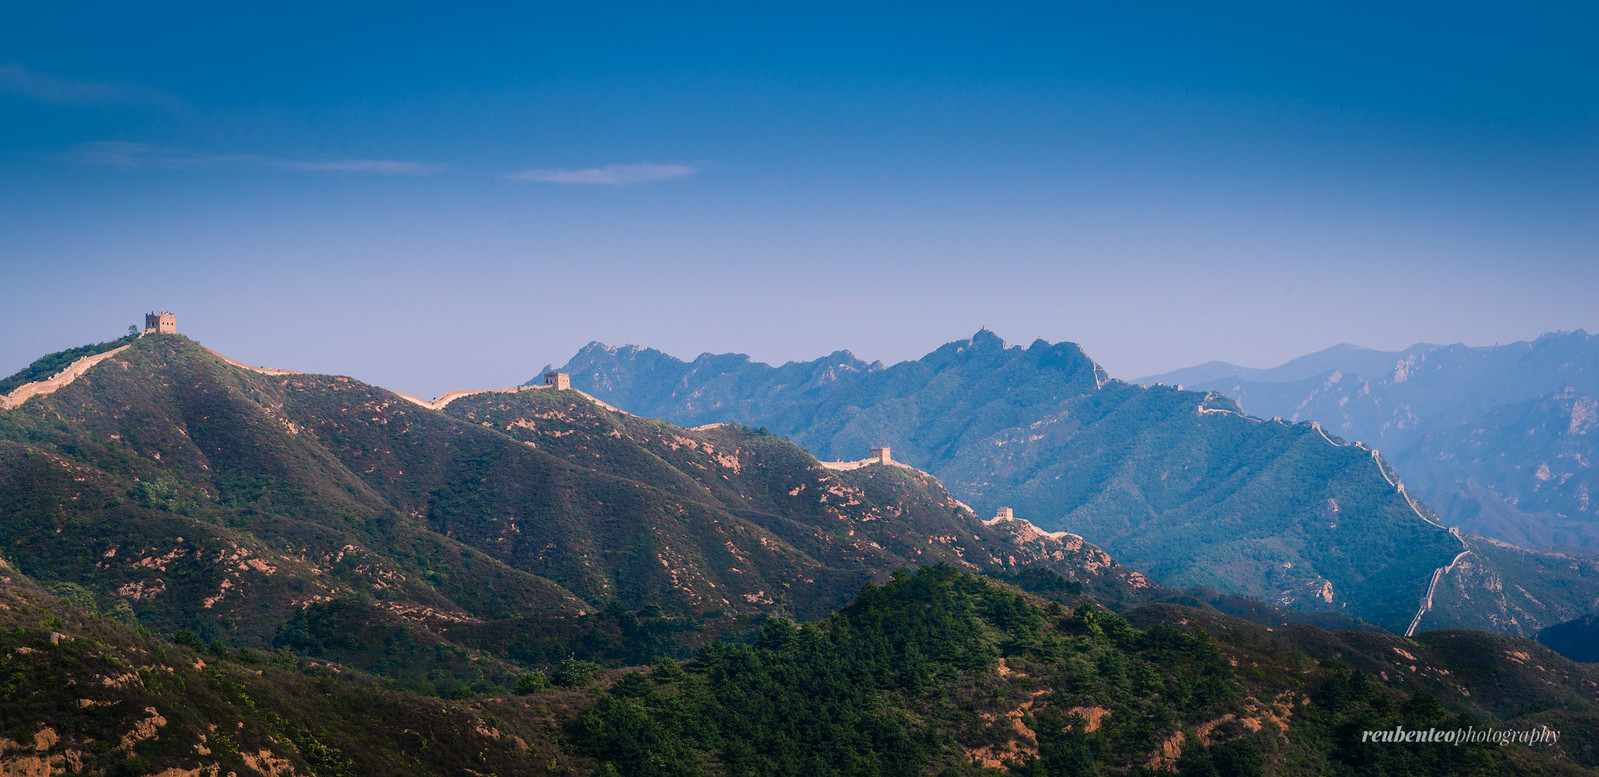 Great Wall of China, Jinshanling